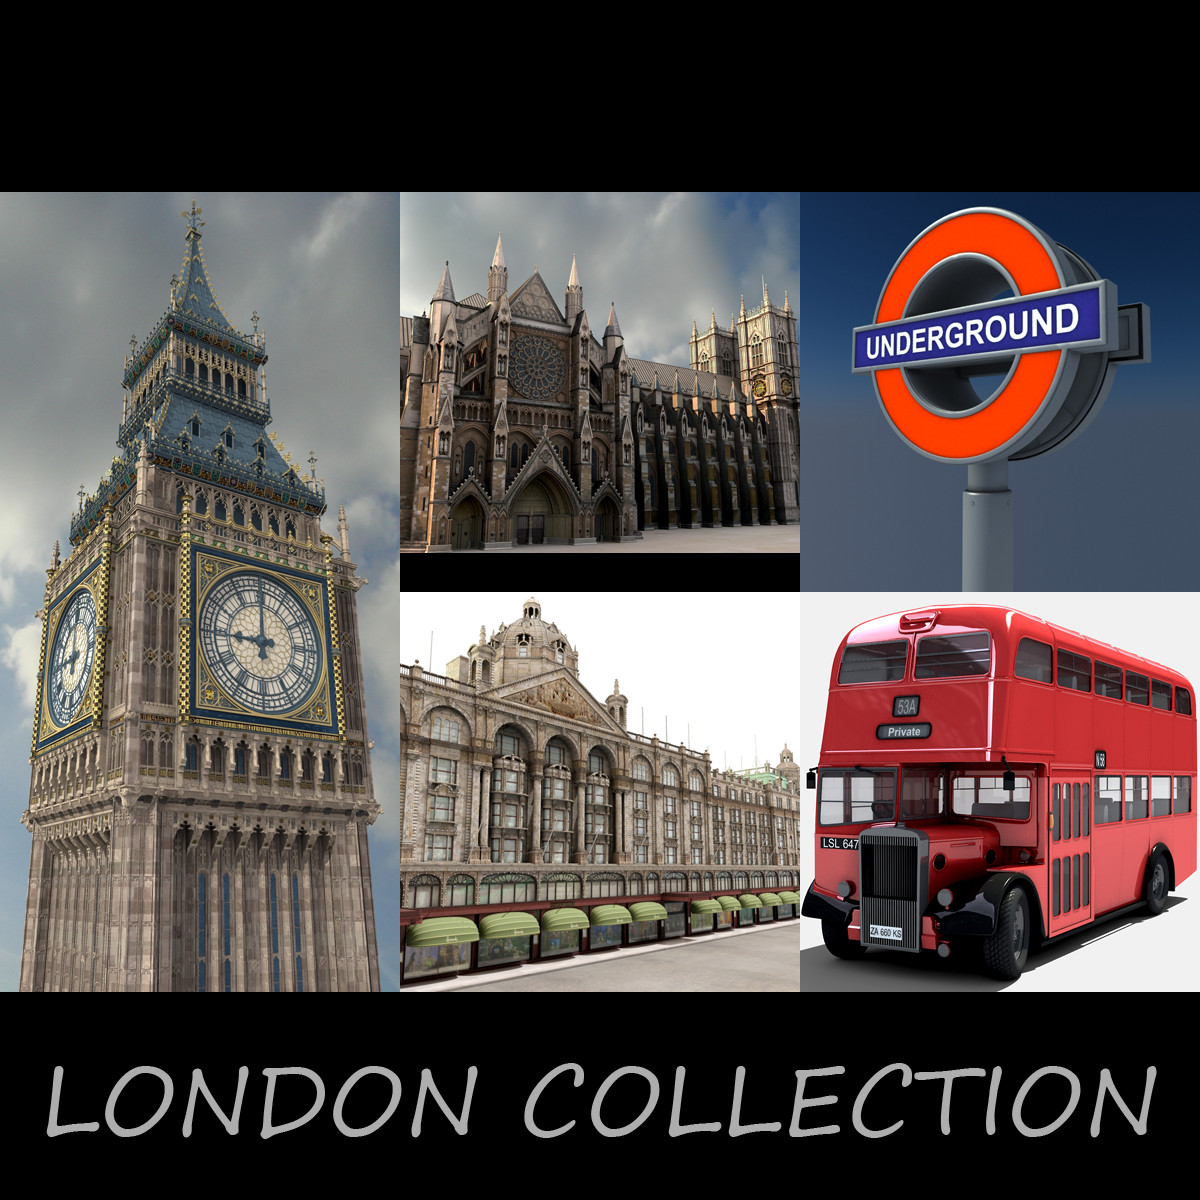 london collection.jpg